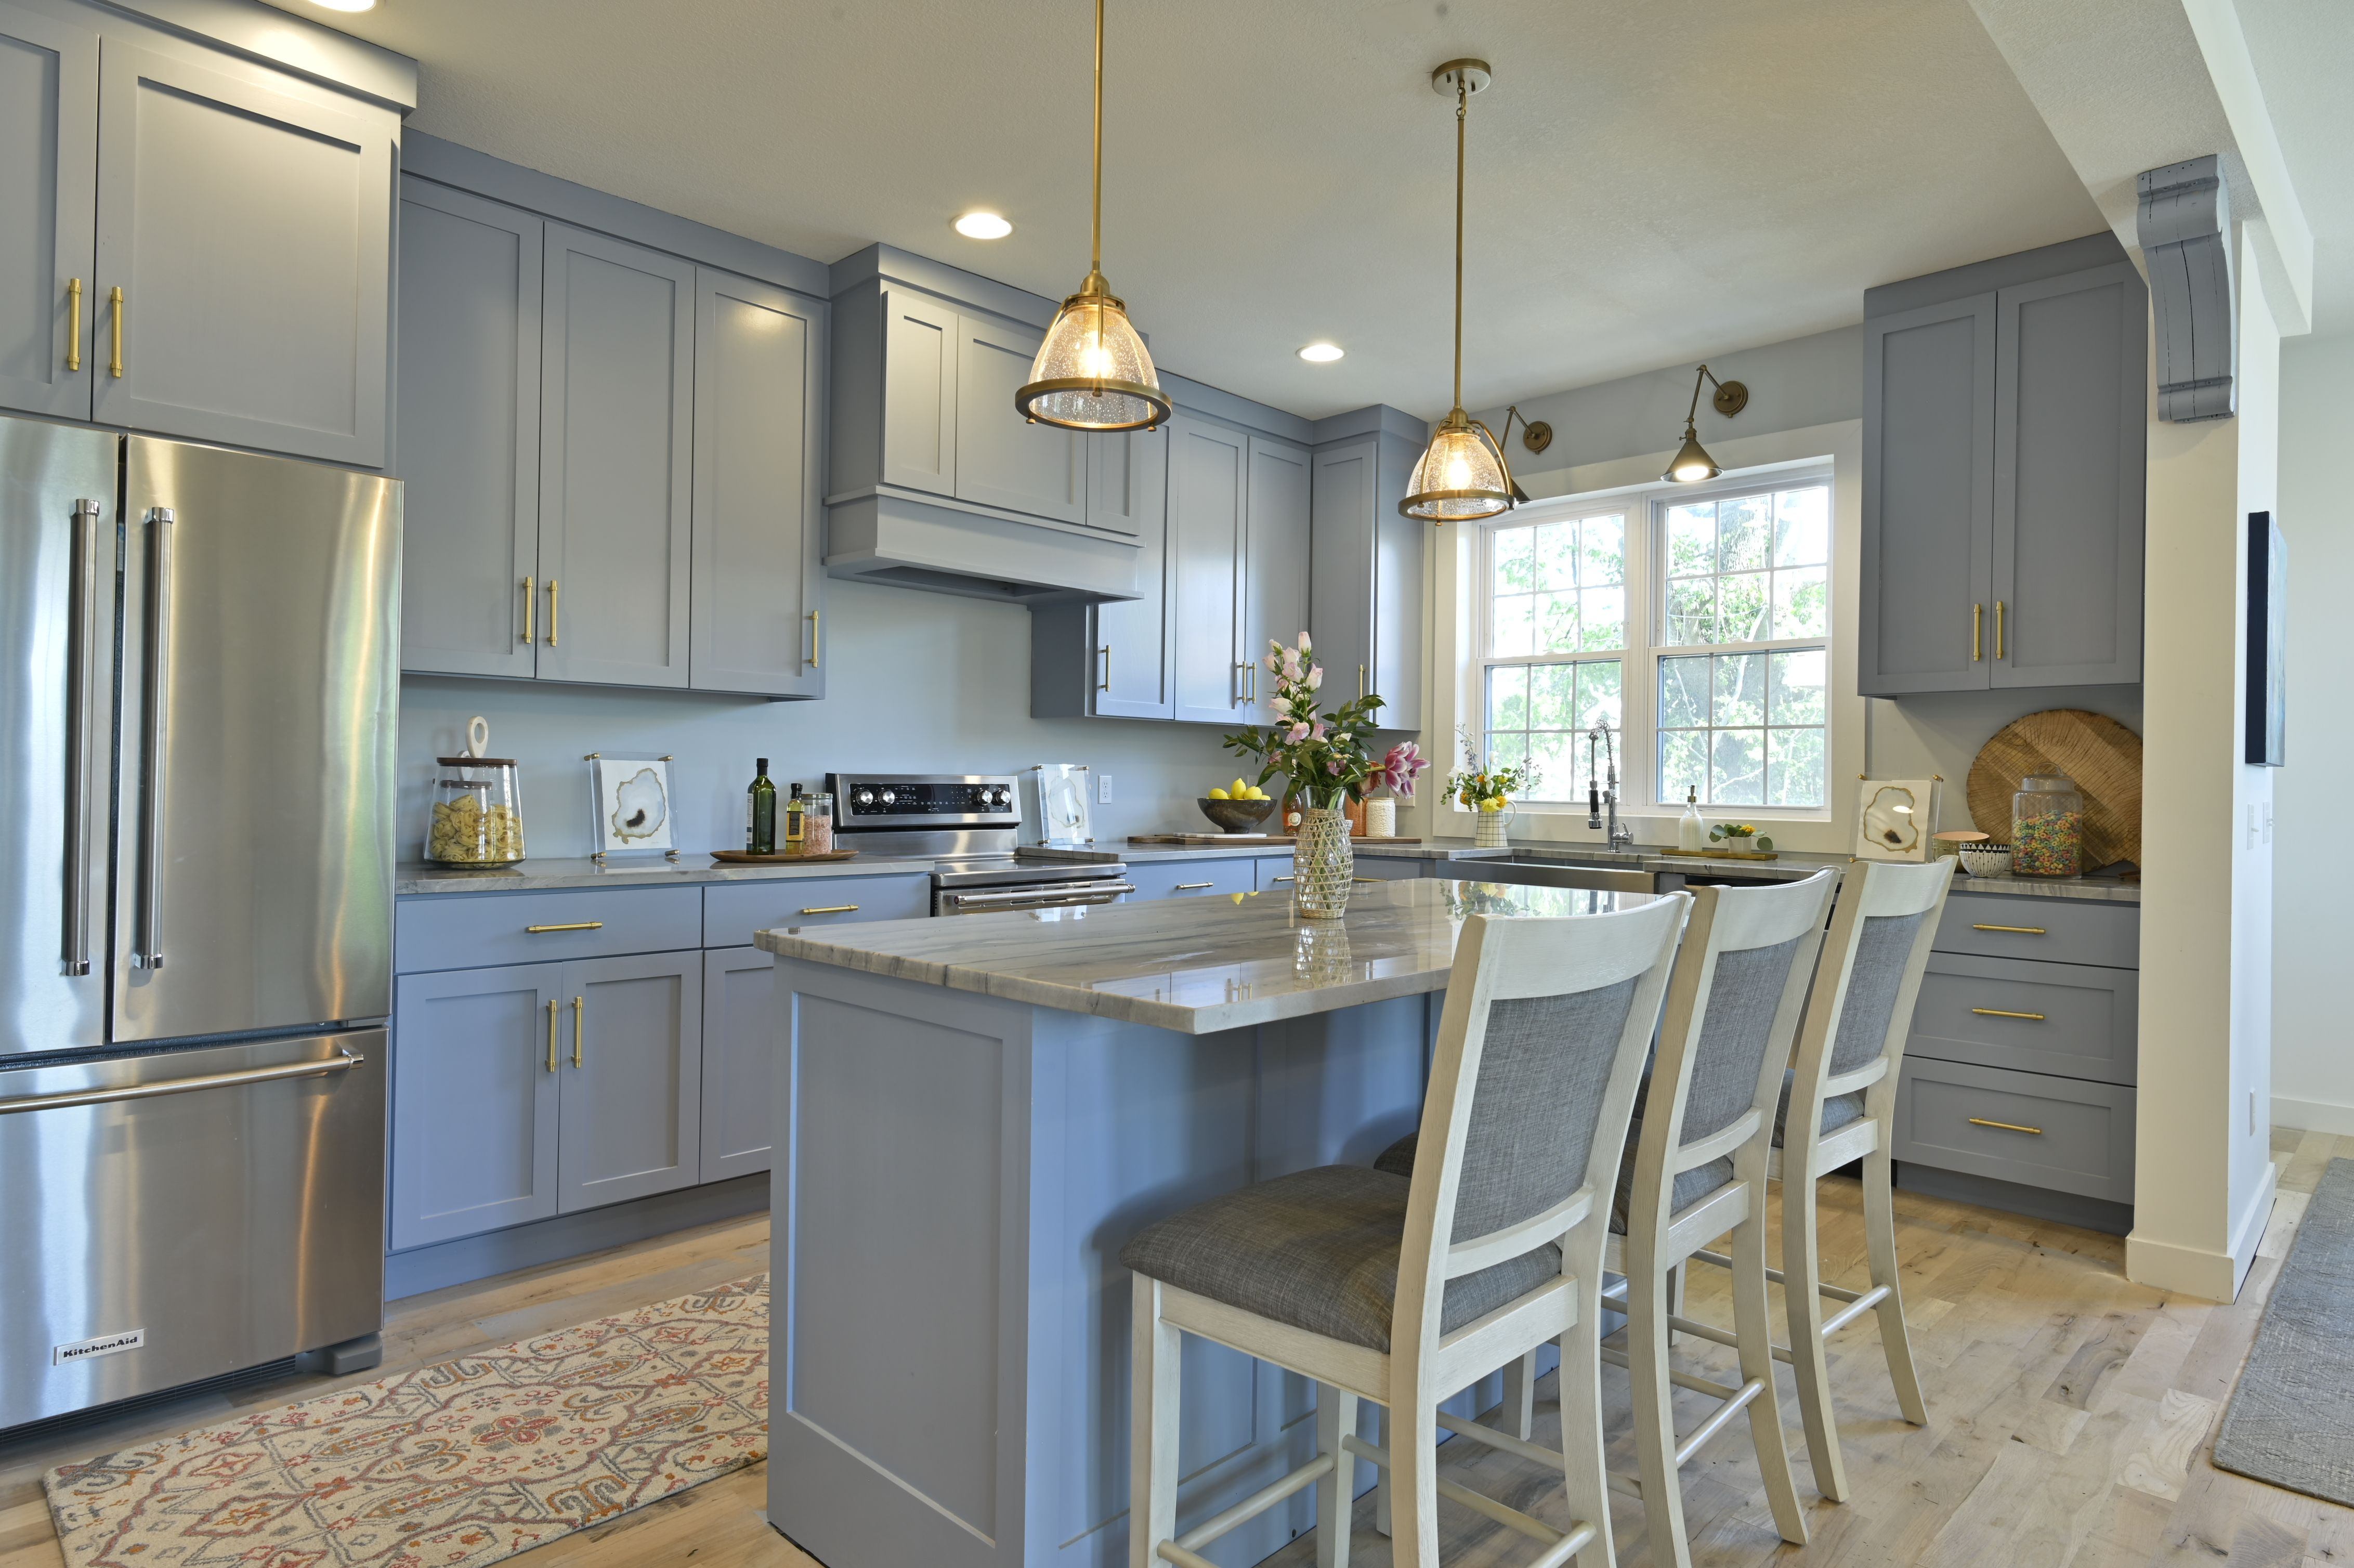 Bargain Mansion In 2020 Painted Kitchen Cabinets Colors Blue Kitchen Cabinets Kitchen